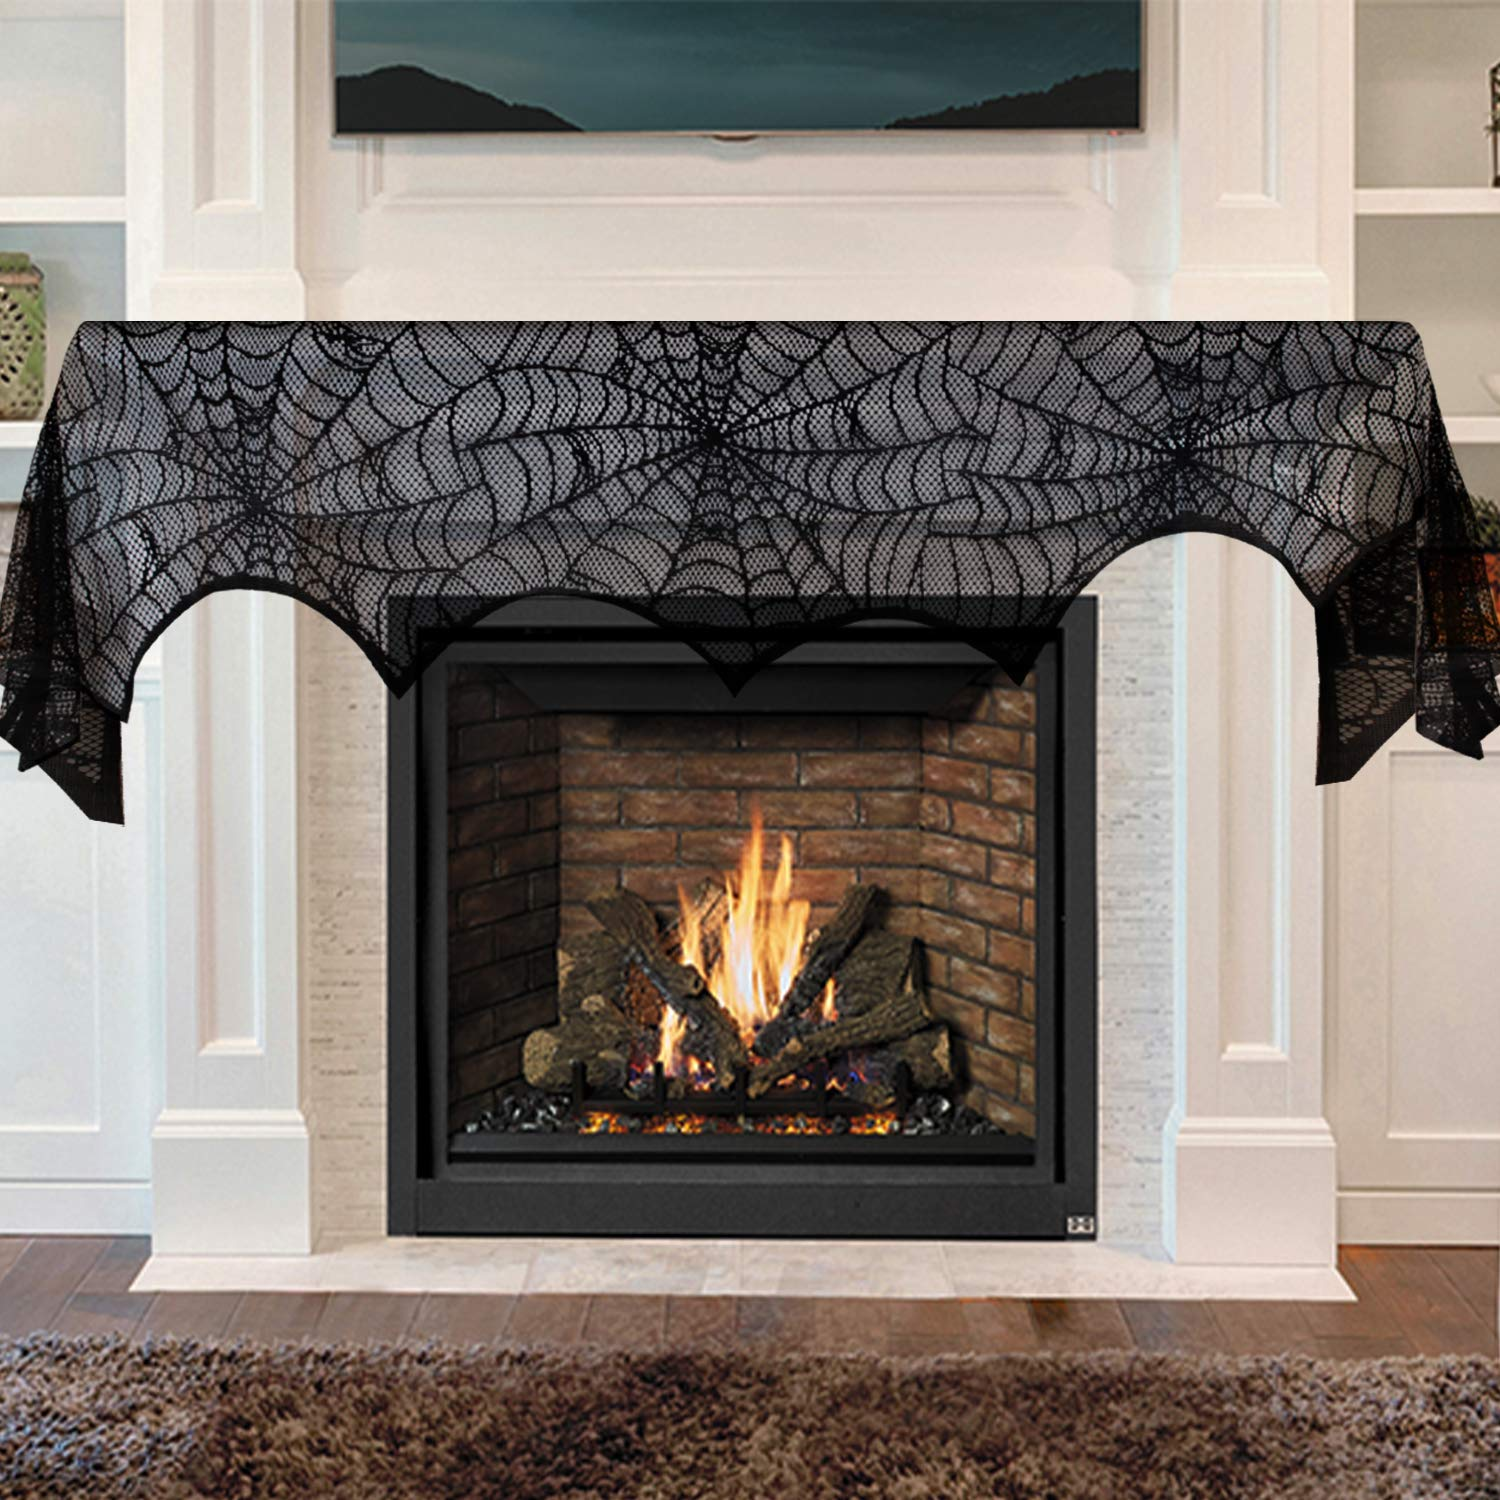 VIGLT Halloween Decorations Indoor, Black Lace Spider Web Fireplace Mantel  Scarf Cover Party Decor